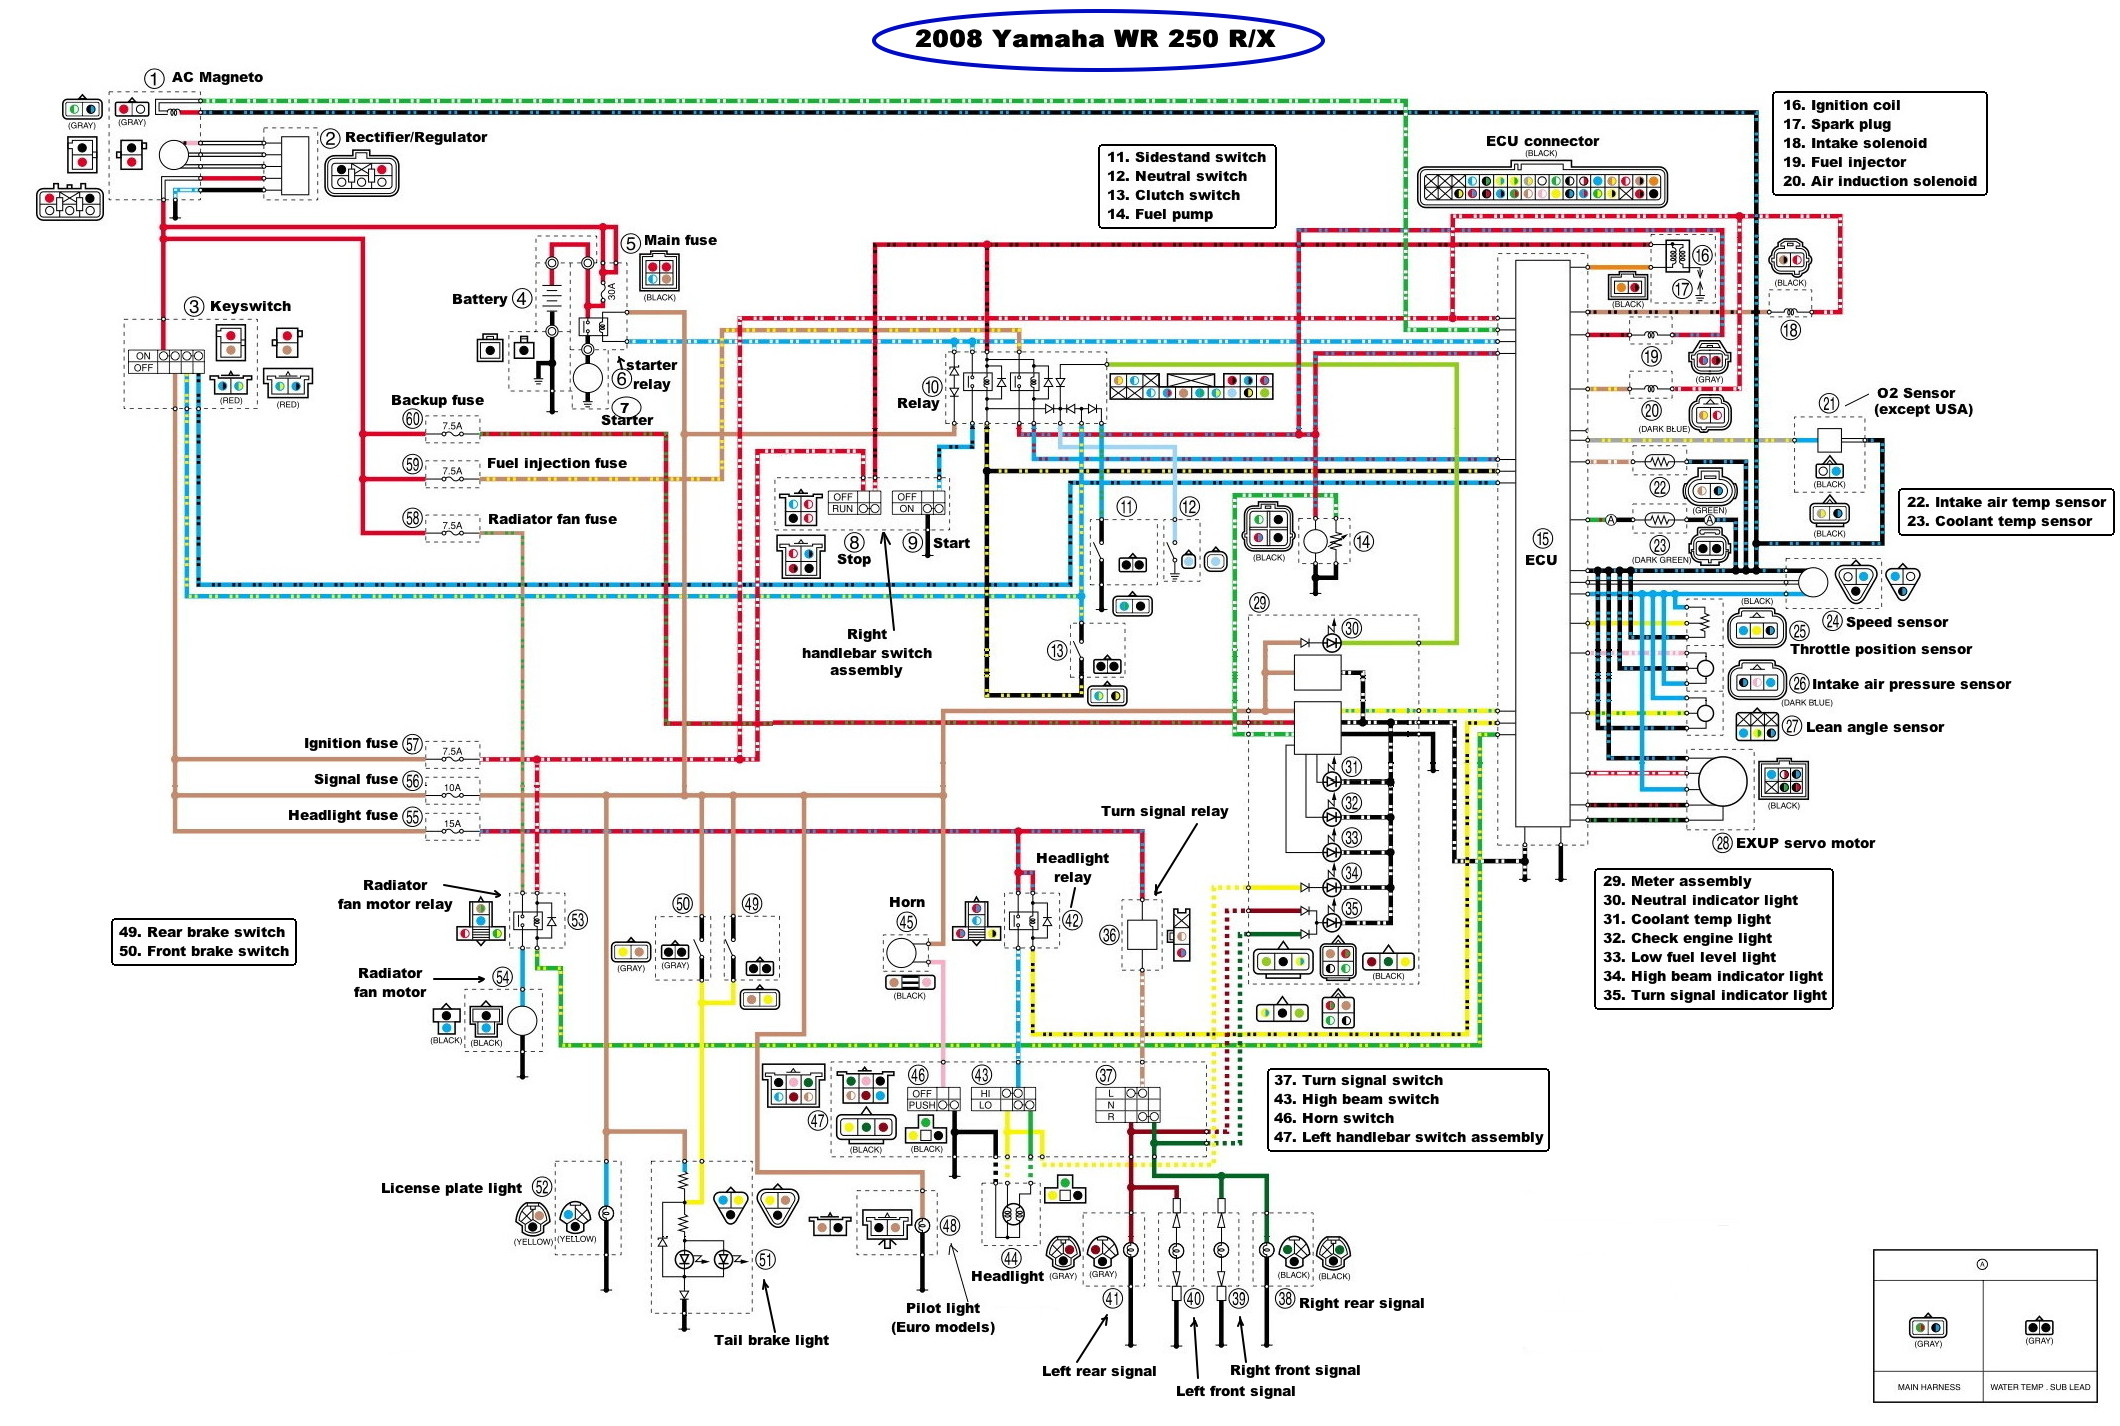 2008 yamaha r6 wiring diagram gibson 50 s 02 cbr service manual pdf page honda forum wirecbrrr diagrams